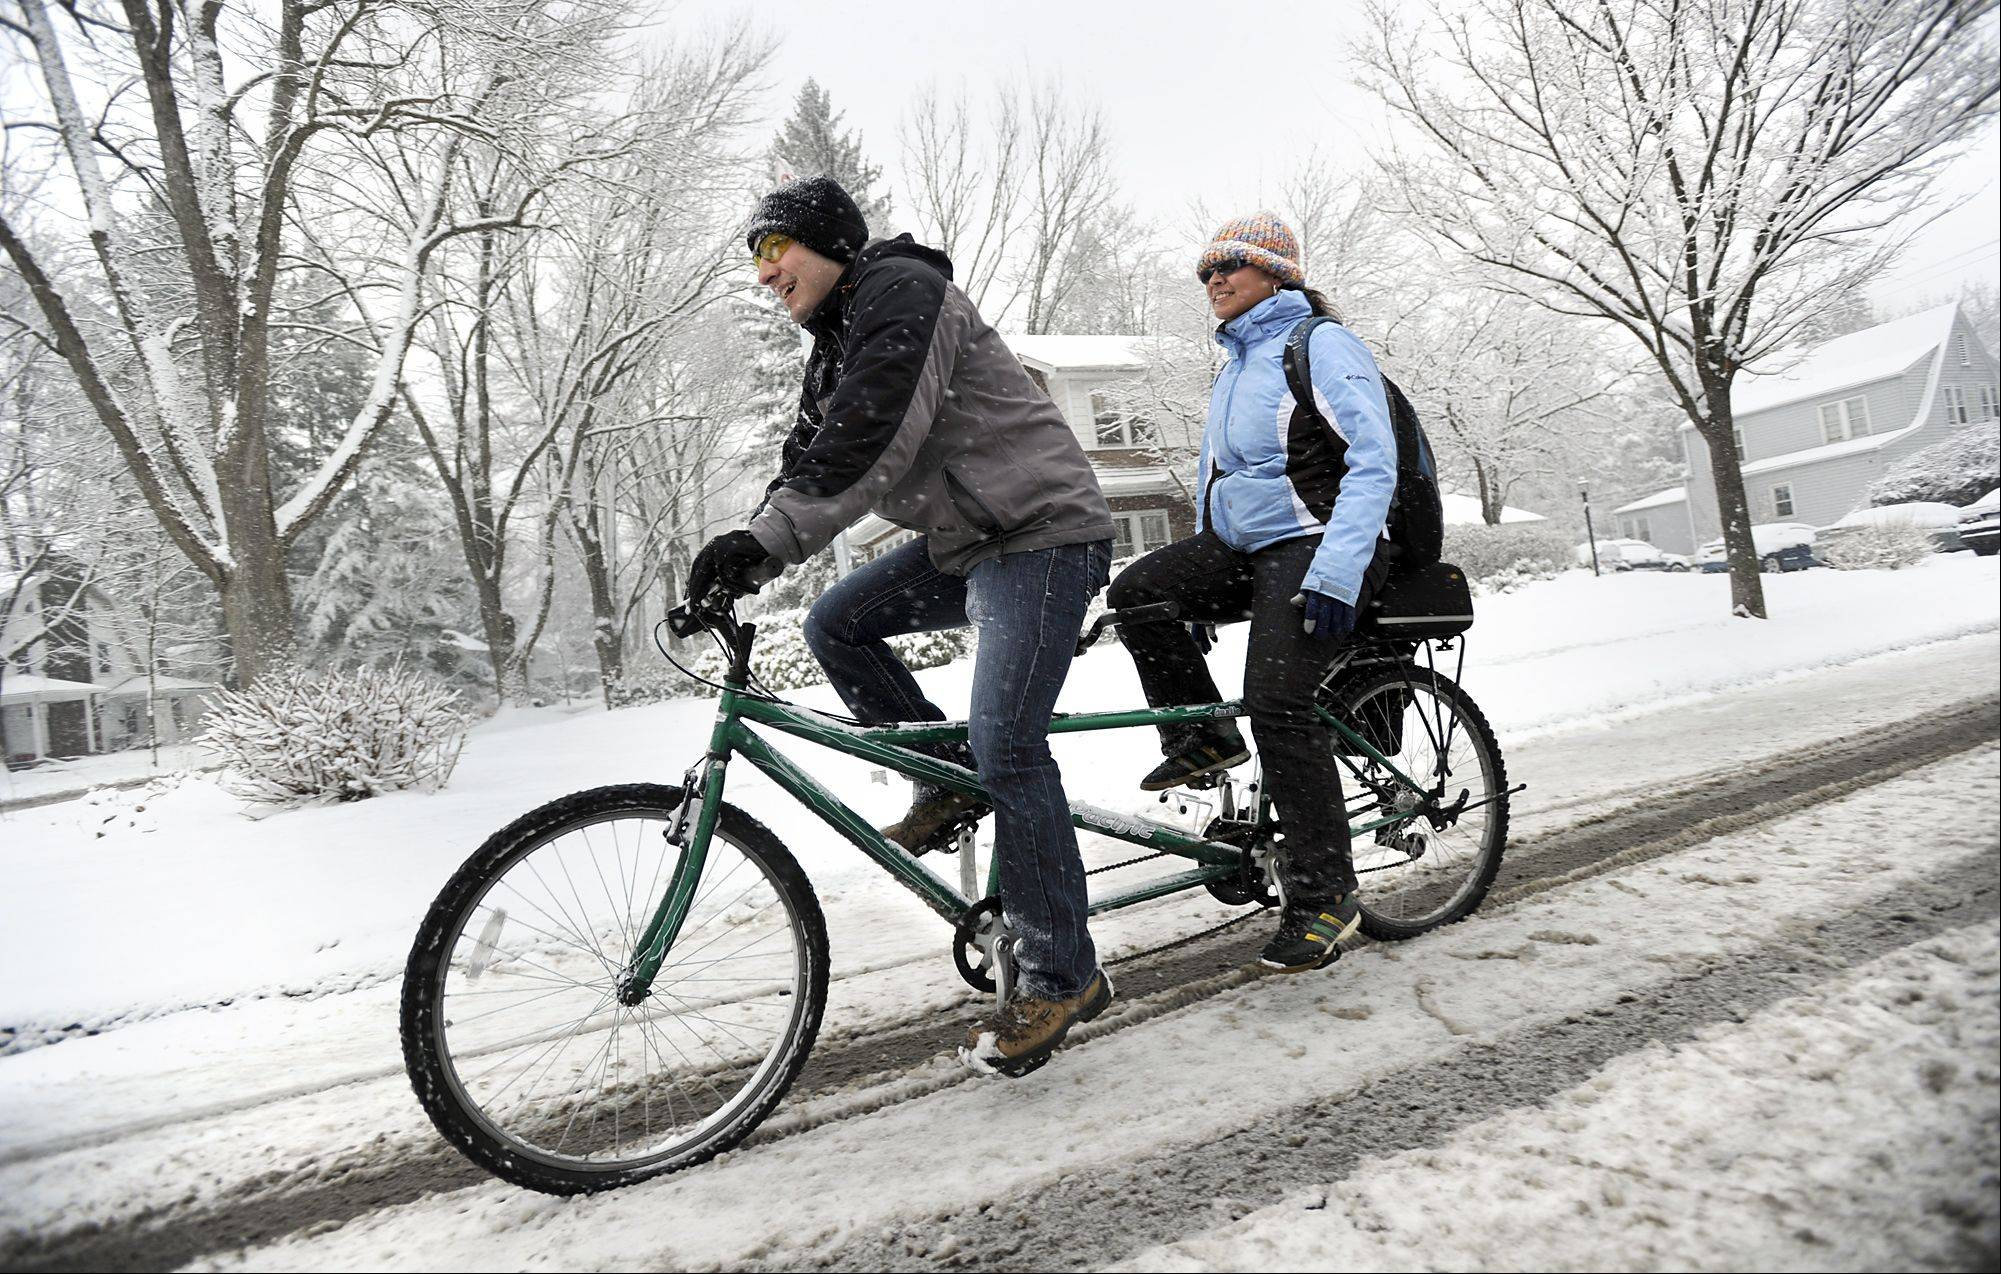 Penn State students David Leinbach and Samantha Rosado ride a tandem bicycle to campus along N Allen Street, in State College, Pa., Monday, March 25, 2013. Heavy snow fell throughout Centre County, Monday, causing local schools to be closed and hazardous traveling conditions.